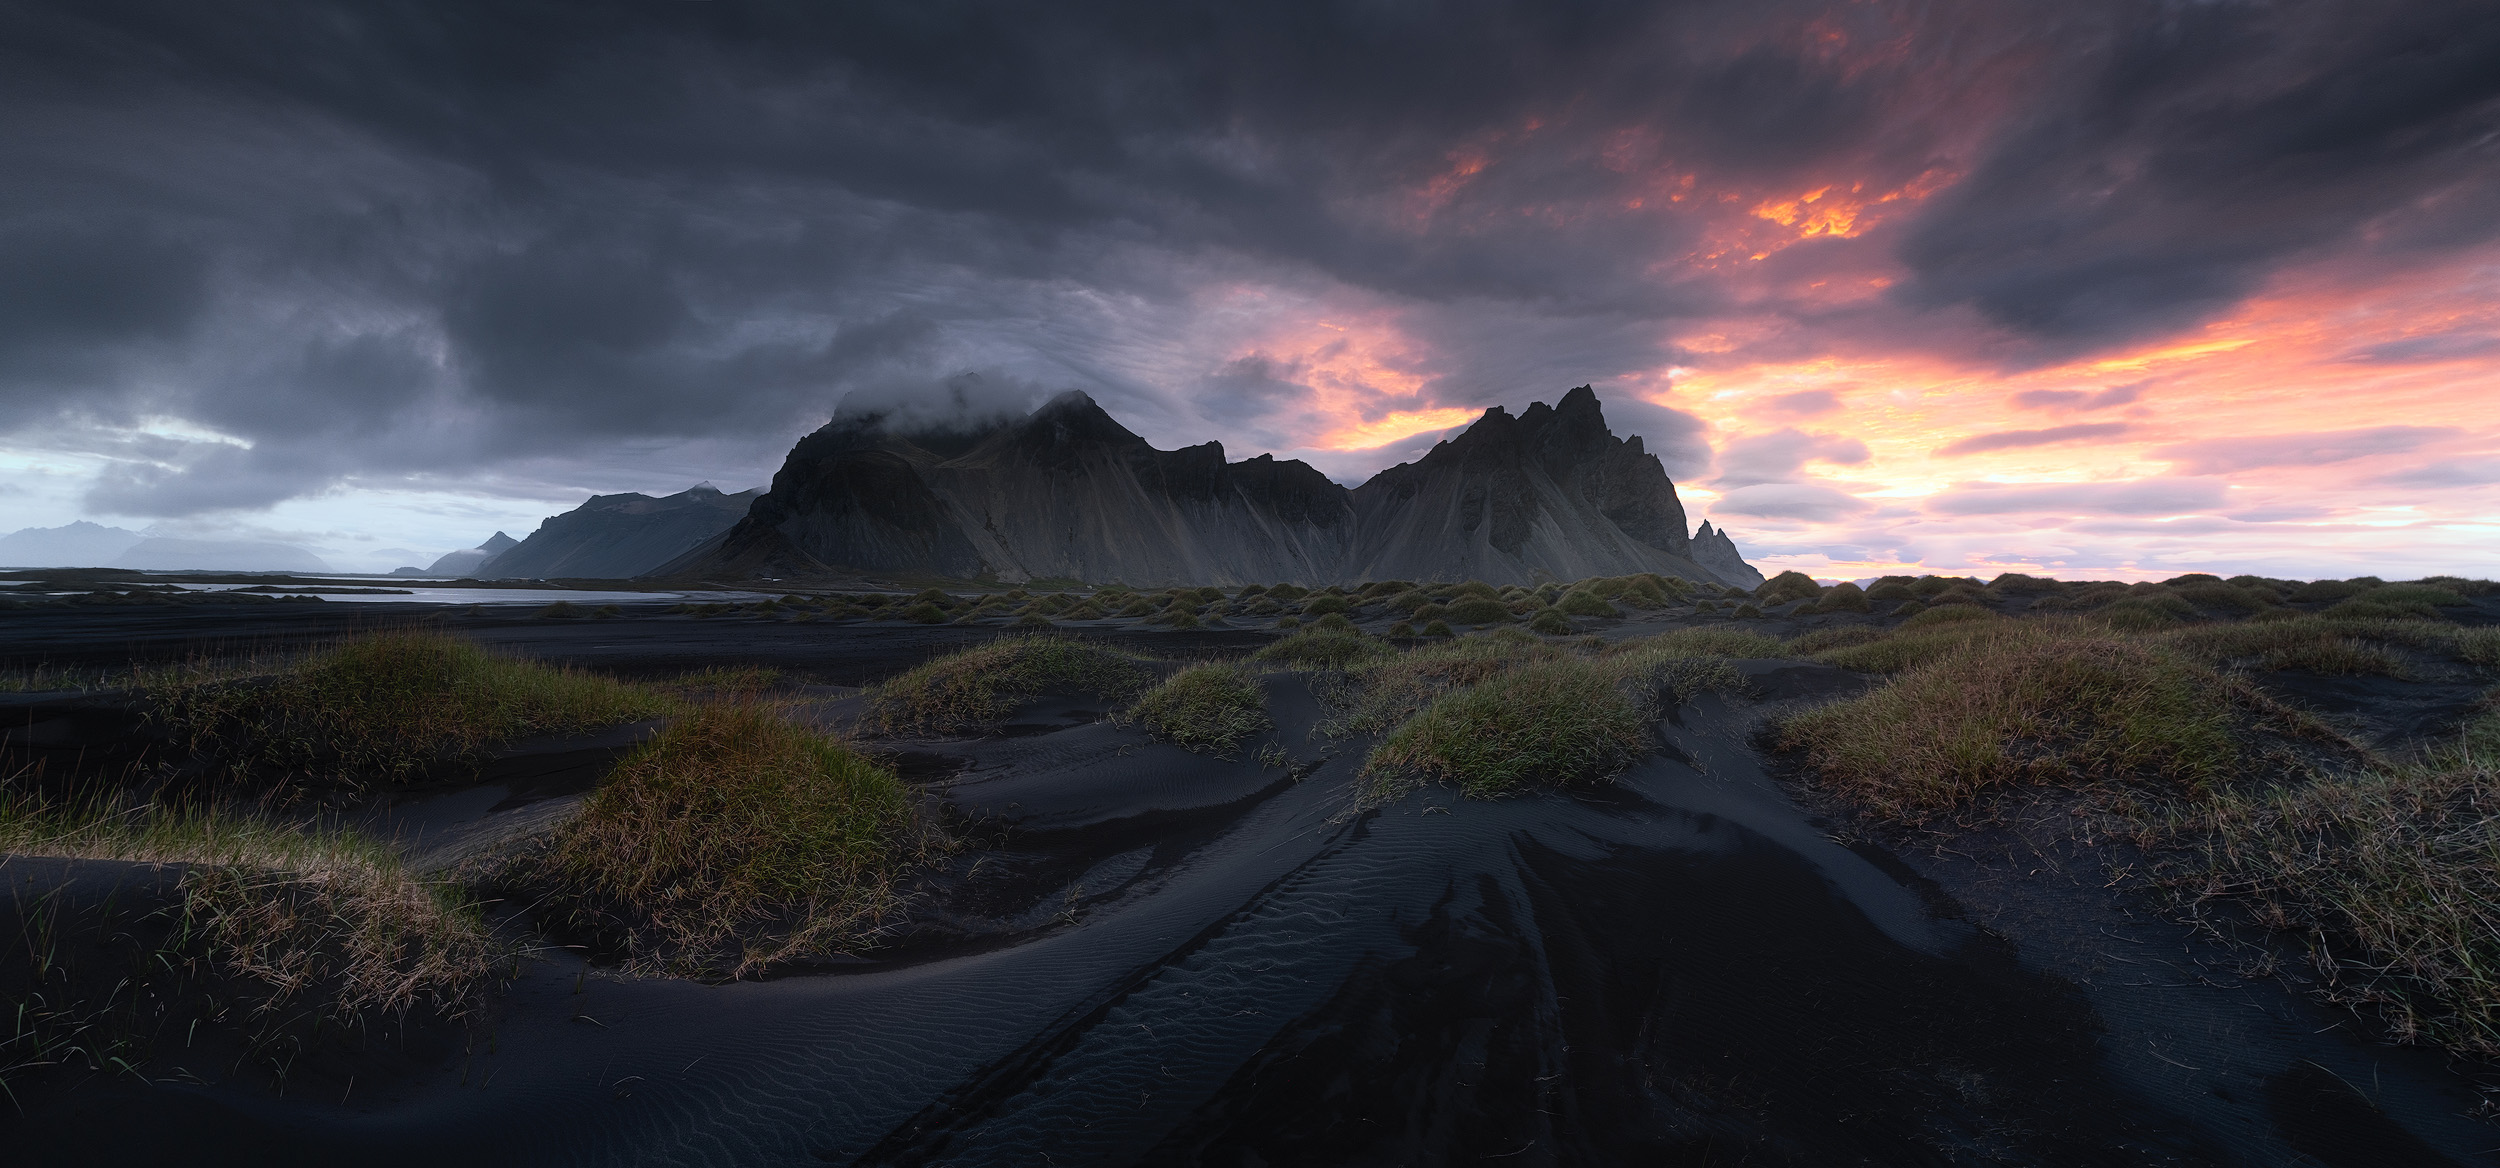 Vestrahorn  In summer in Iceland sunsets and sunrises blend into one another and on the evening I was shooting these peaks on on the south eastern corner of the country I had some of the most amazing light and colour I've ever experienced in Iceland. This is a 6 image stitched panorama of the black sand dunes and mountain range in this incredible place.